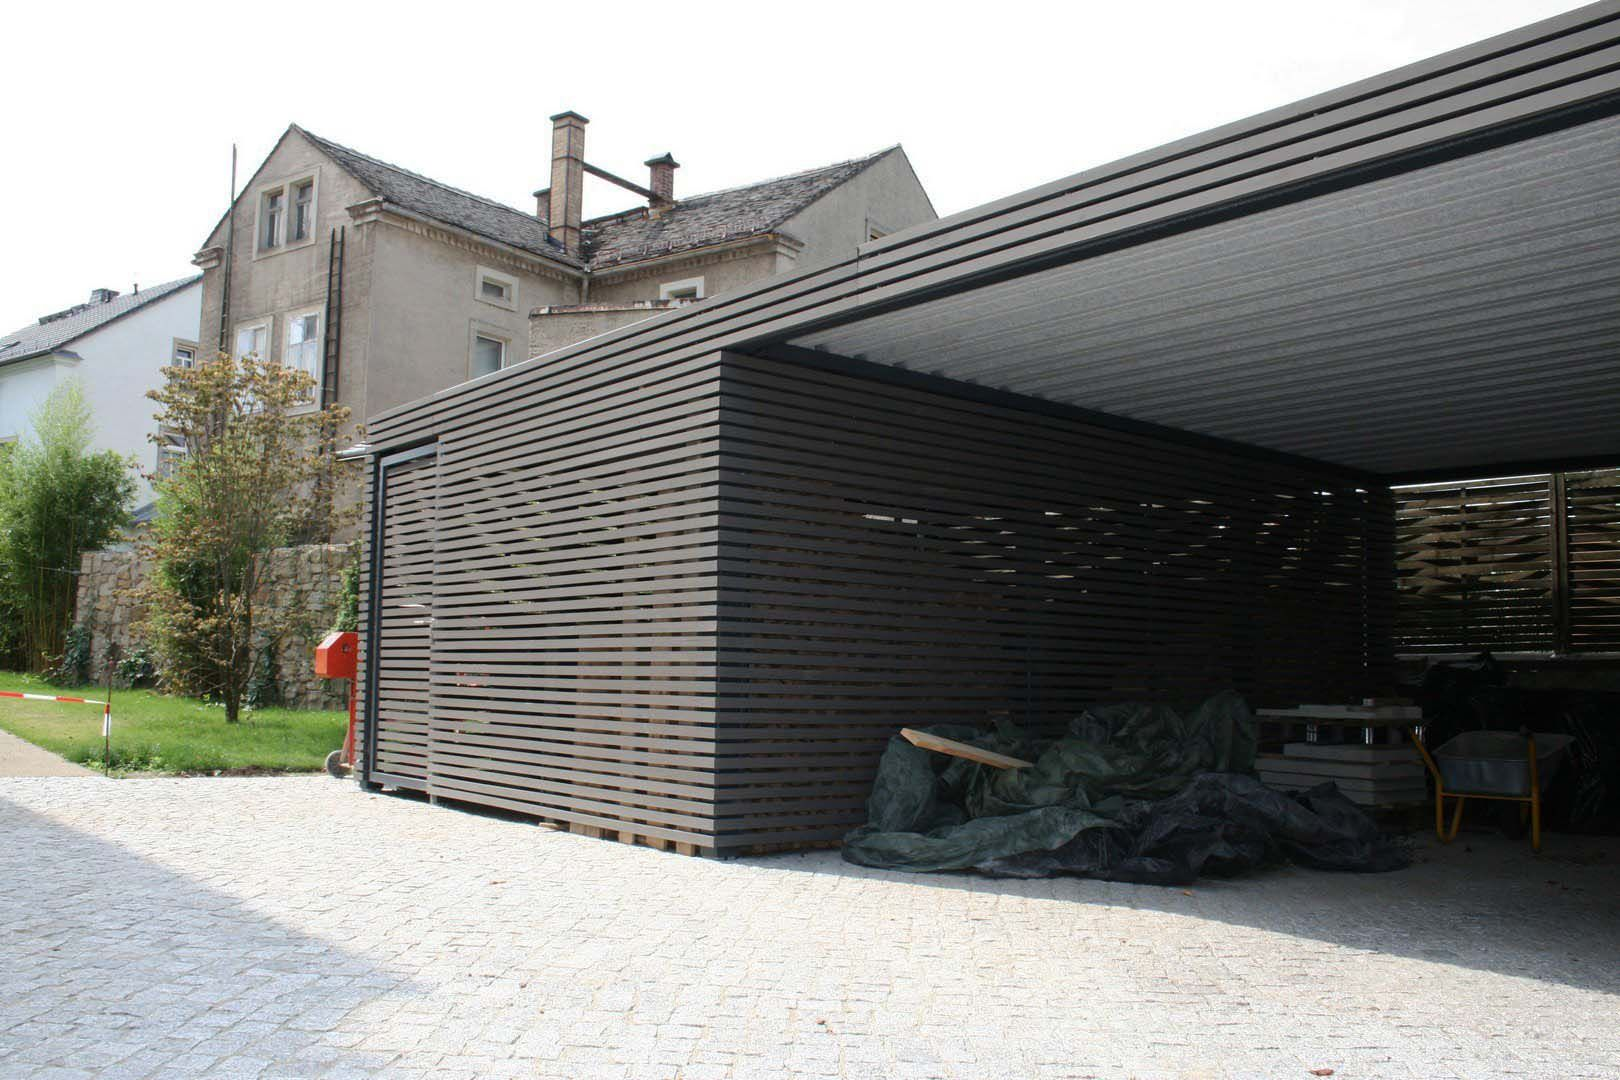 design metall carport aus holz stahl individuell dortmund deuts metallcarport doppelcarport. Black Bedroom Furniture Sets. Home Design Ideas